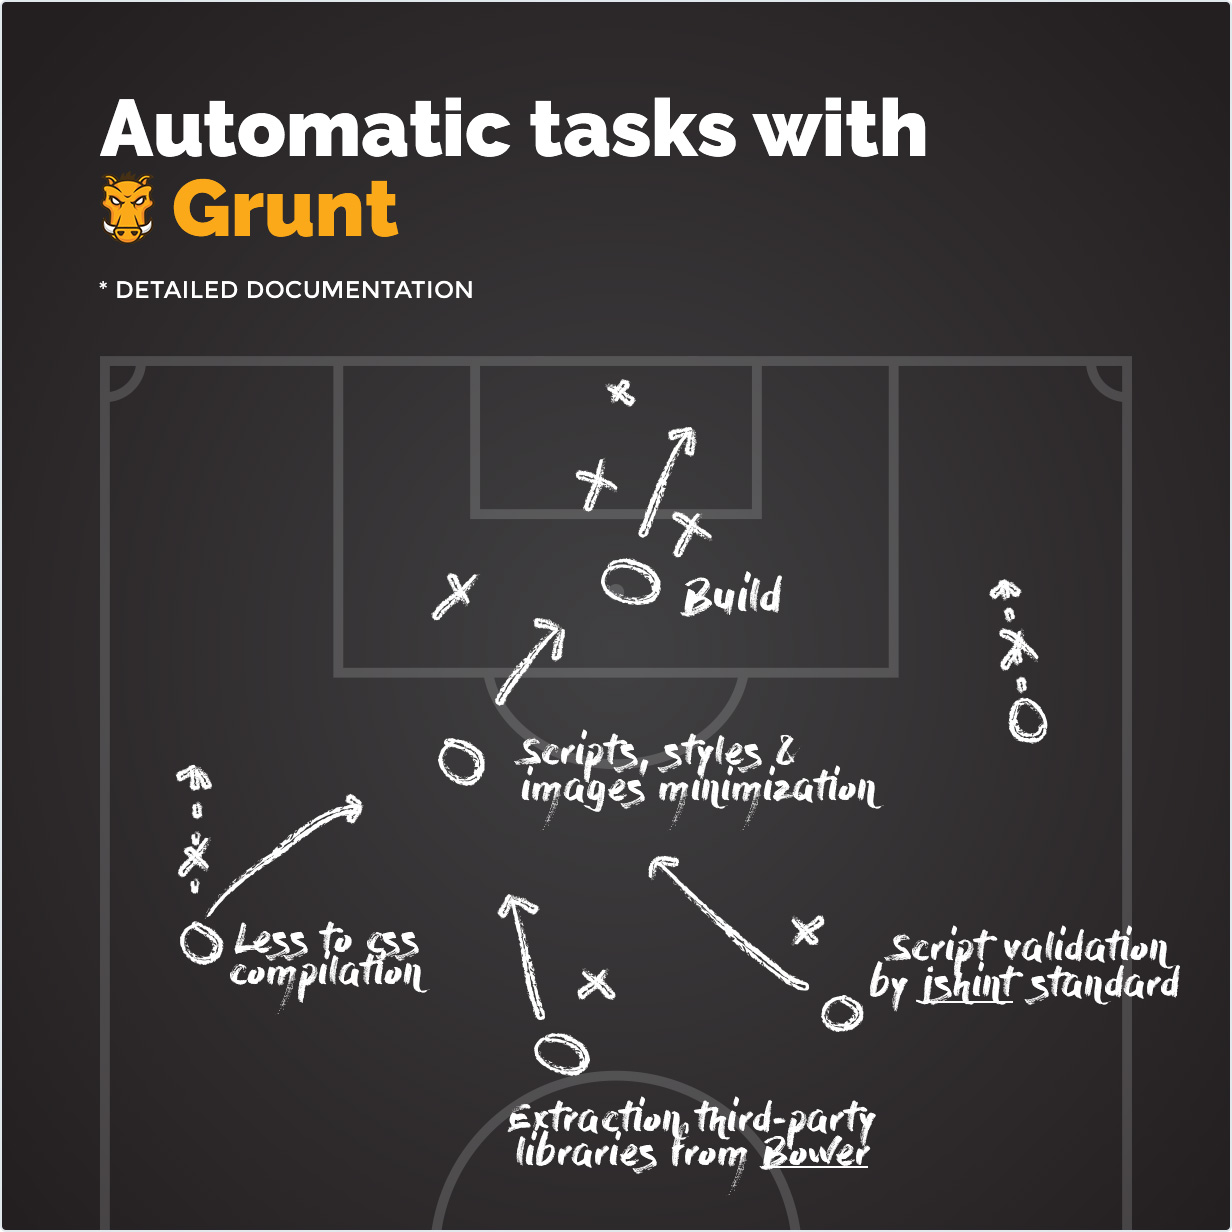 Automatic tasks with Grunt